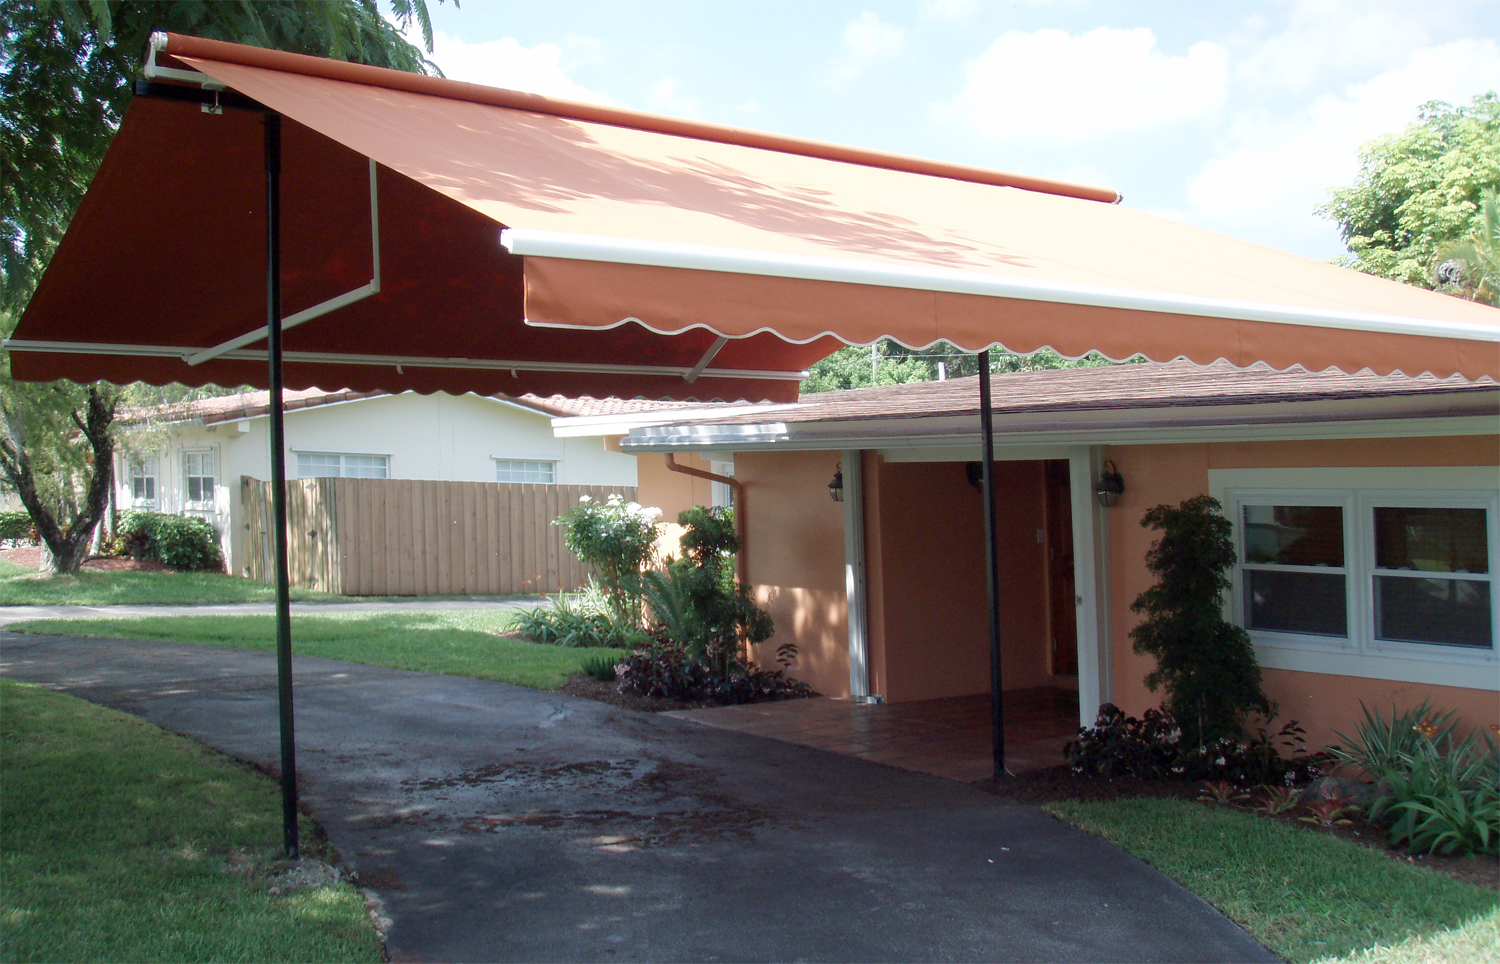 Butterffly Awning Over Driveway